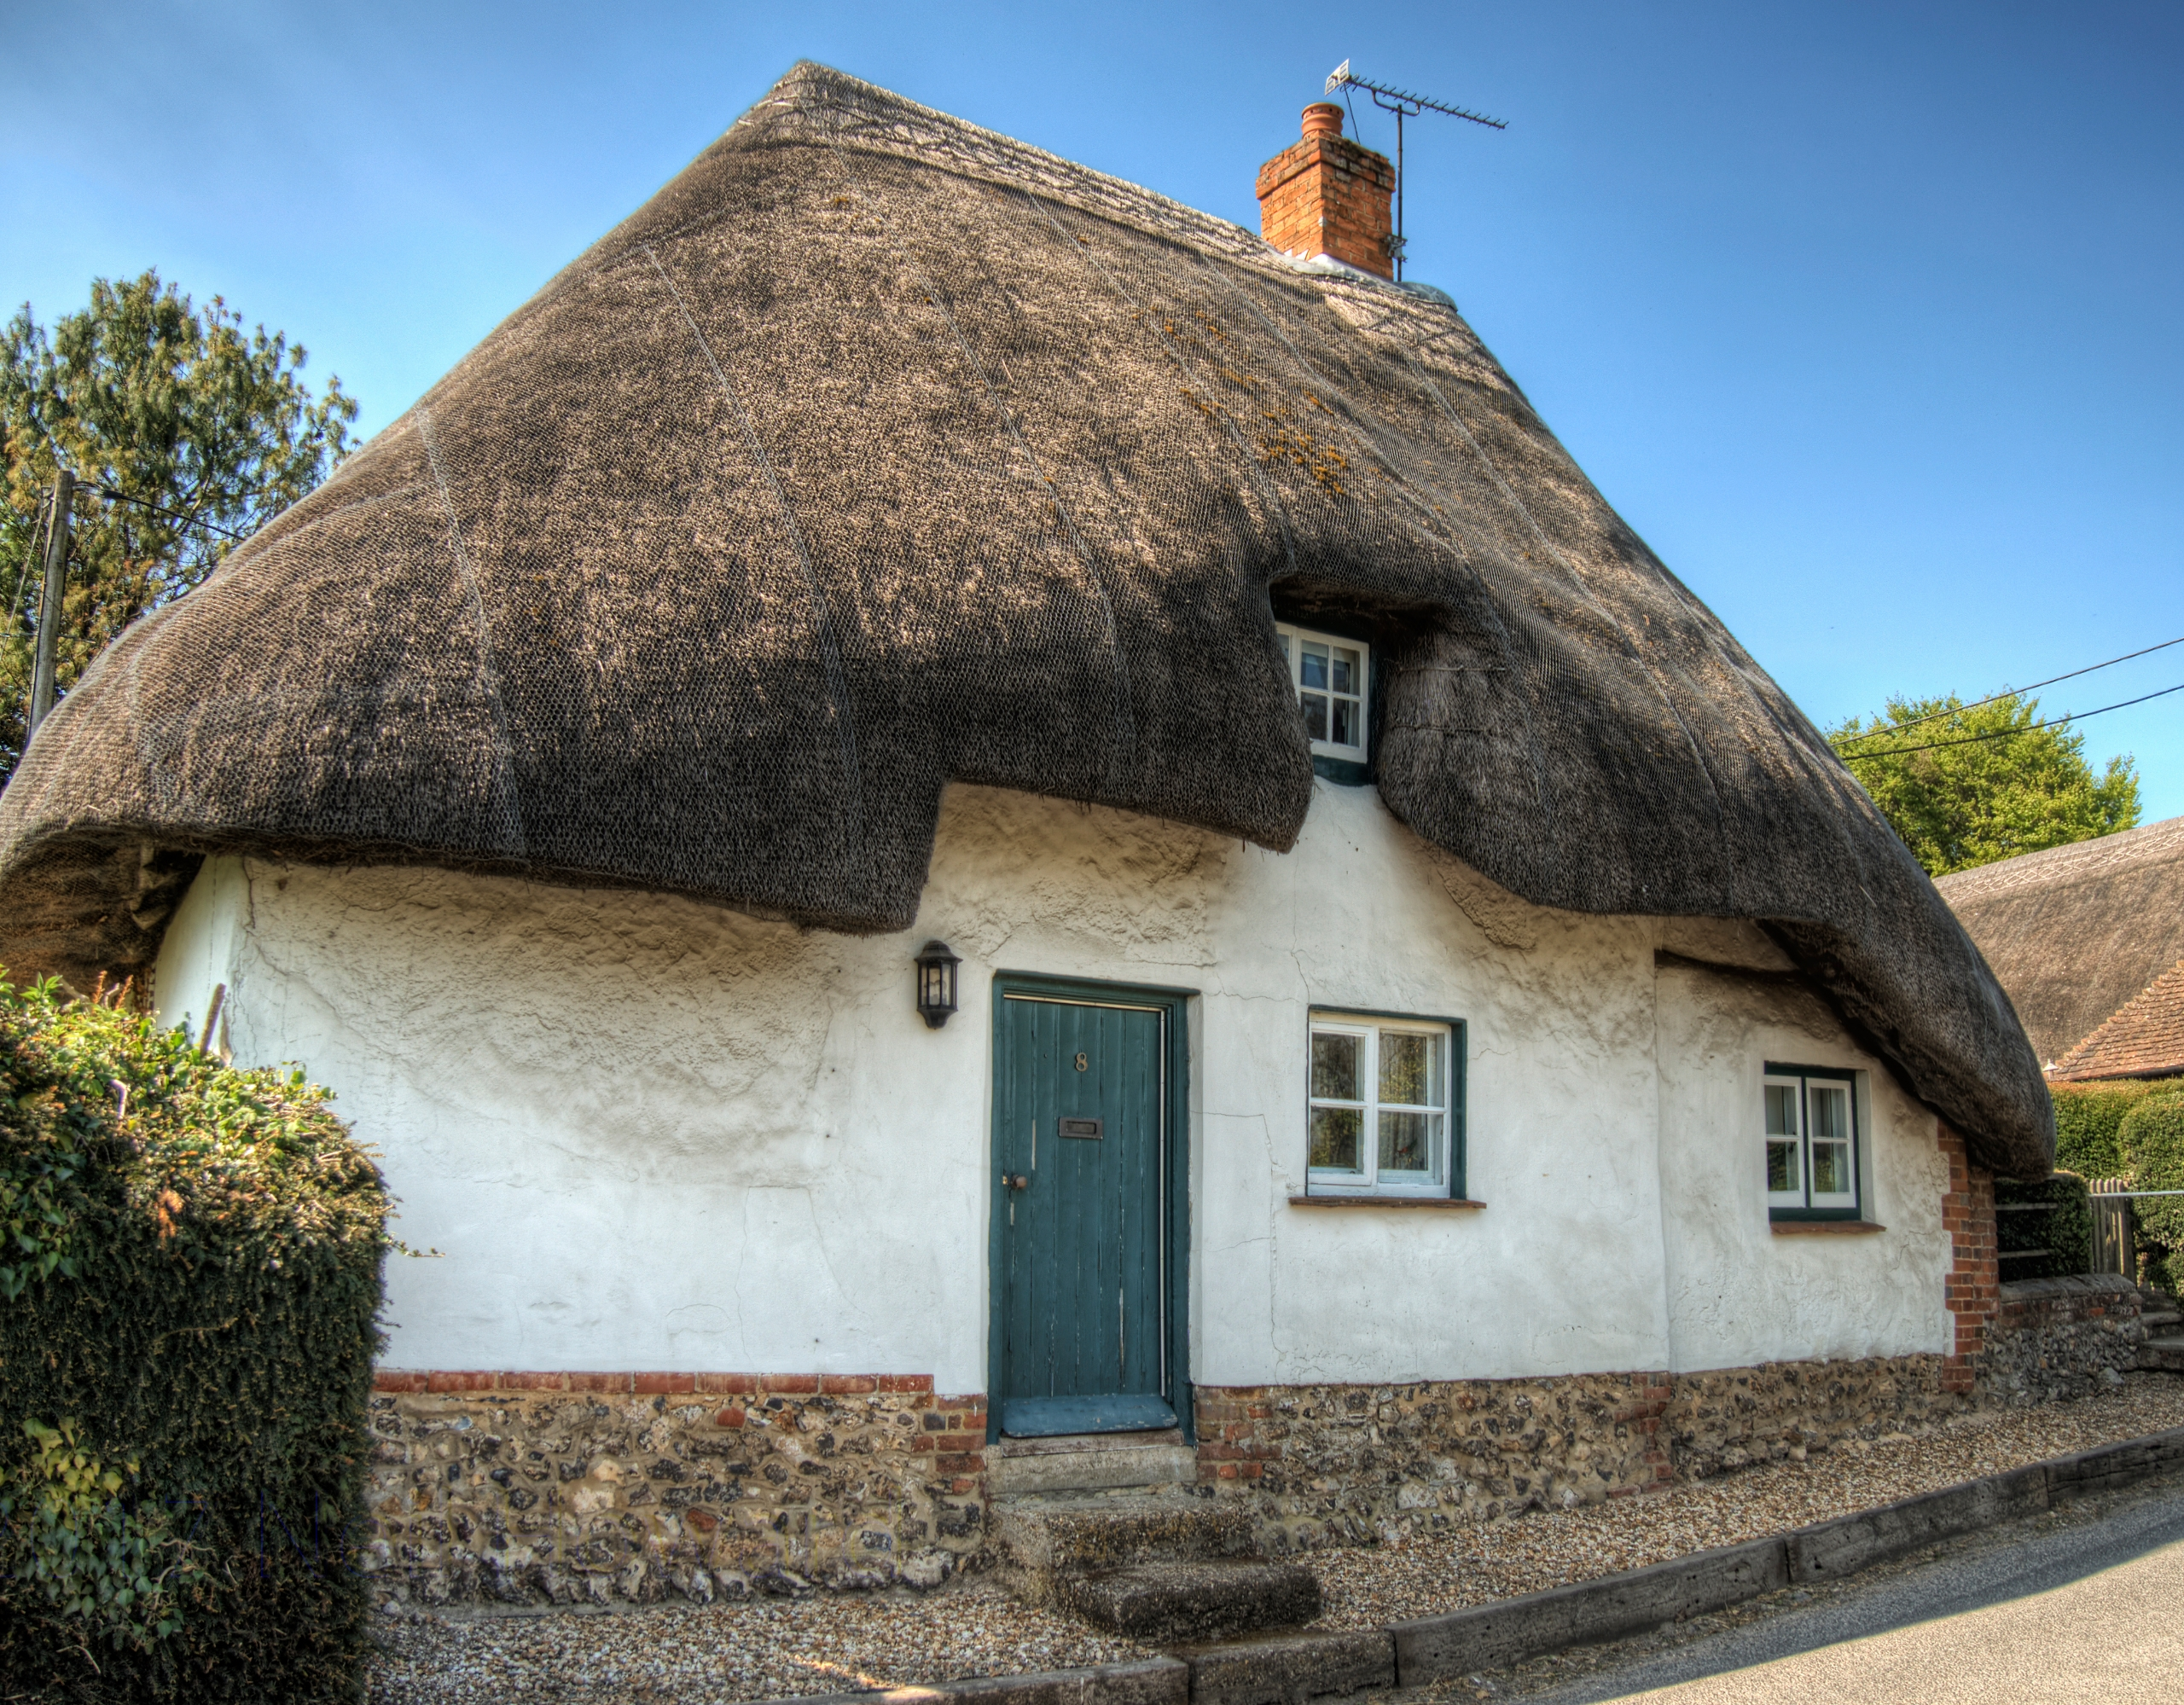 Thatched Cottage - cute thatche - neilhoward | ello